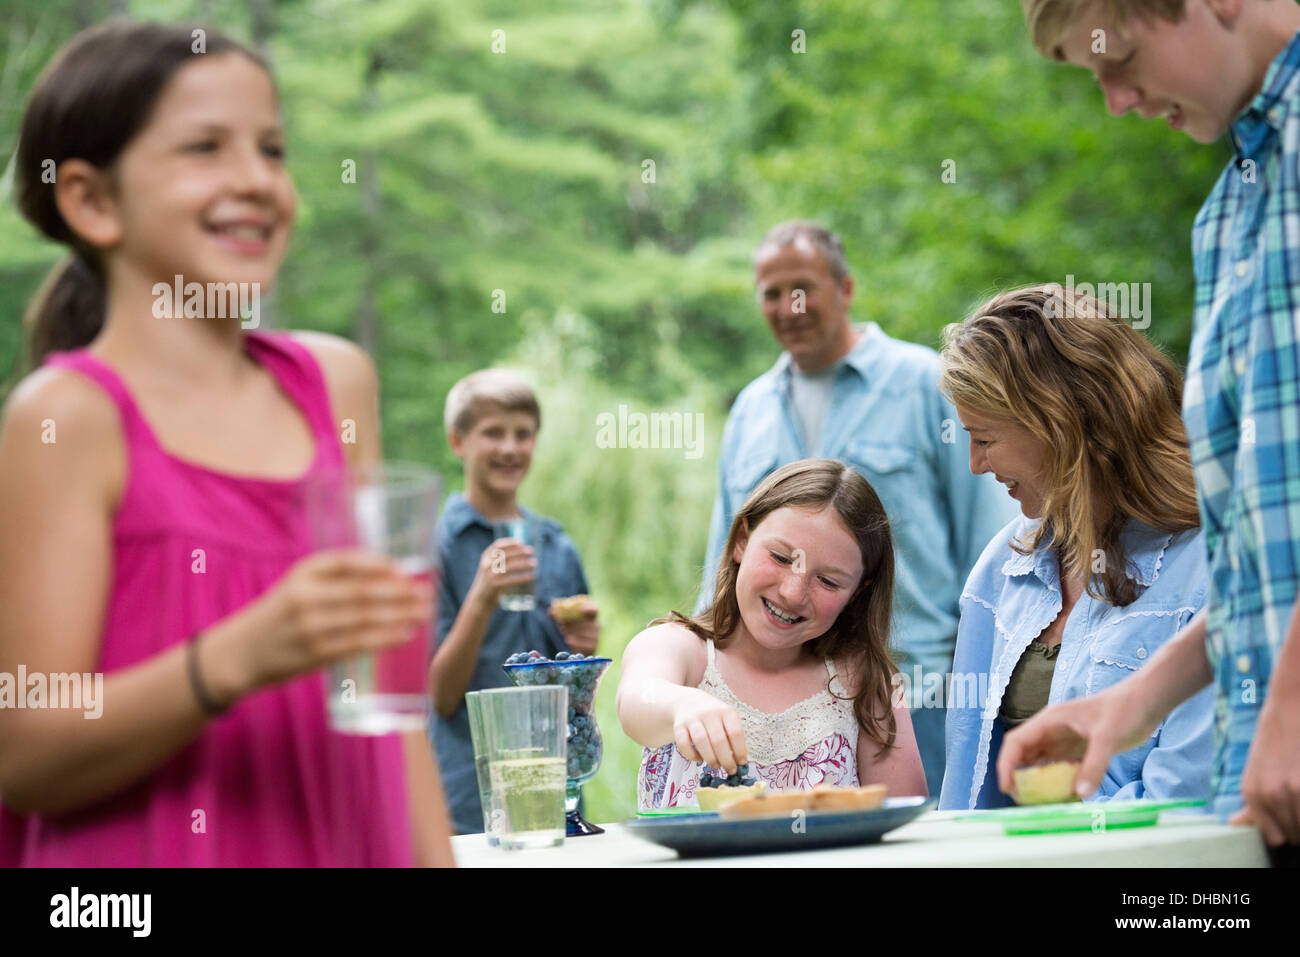 Organic Farm. An outdoor family party and picnic. Adults and children. - Stock Image